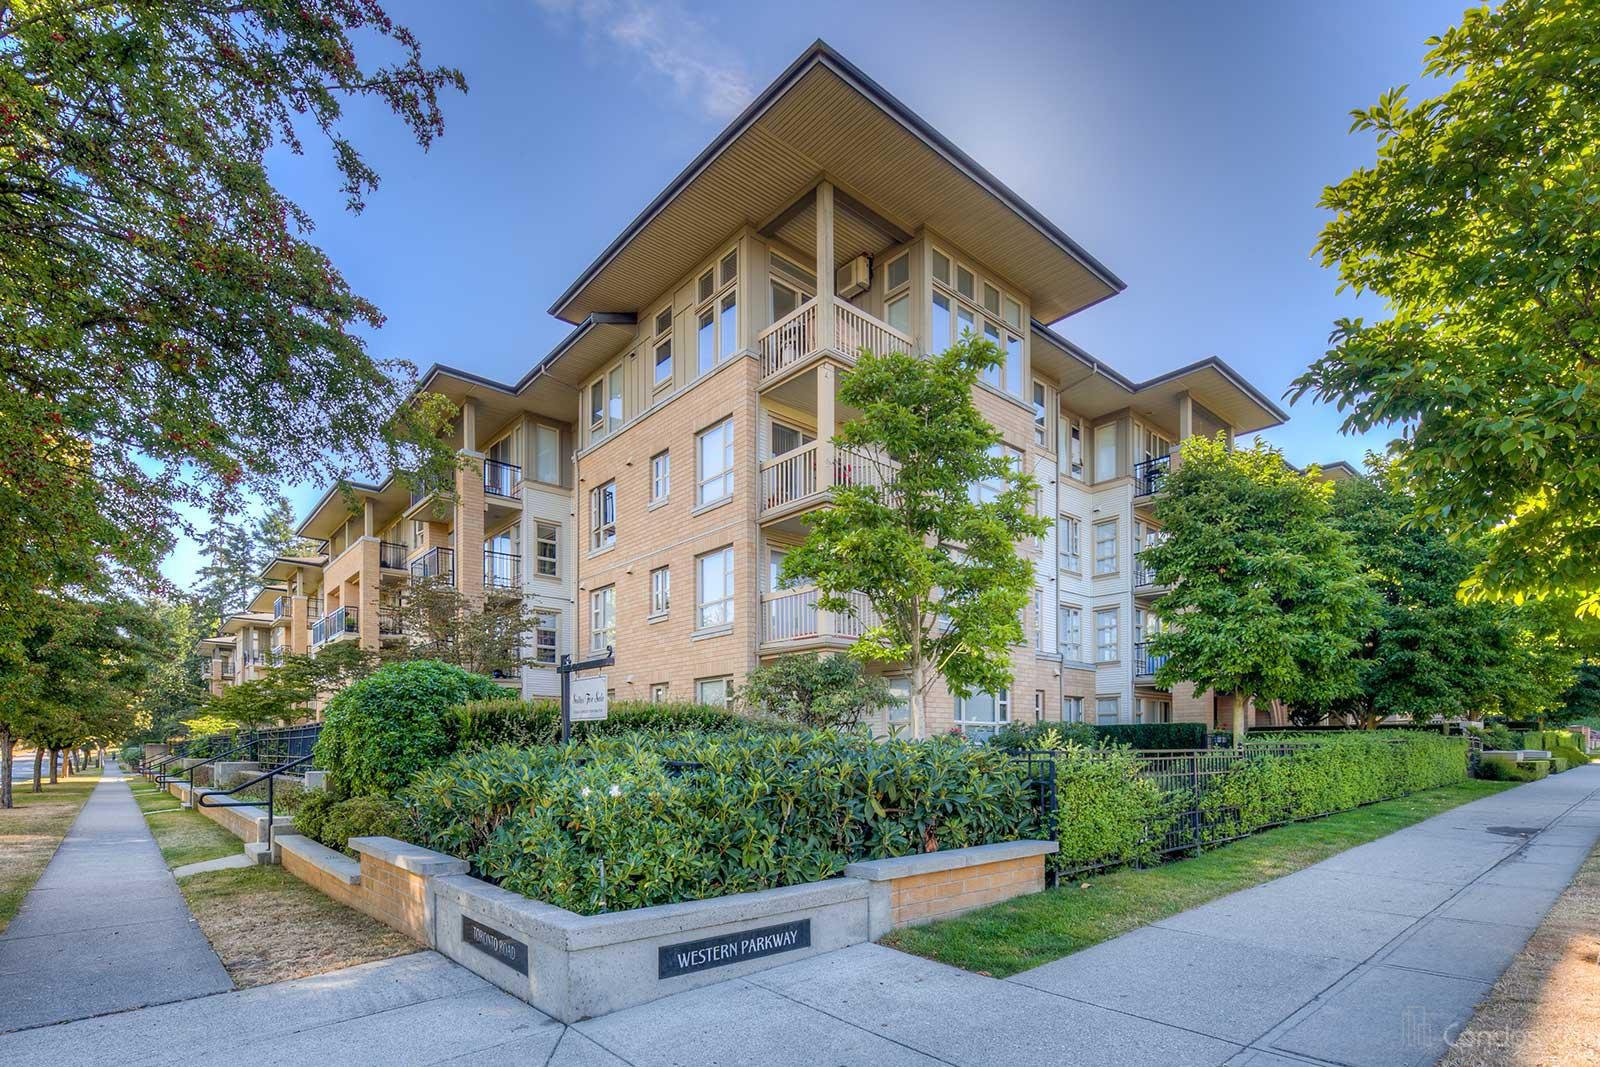 Winslow Commons at 2338 Western Pkwy, Vancouver 0